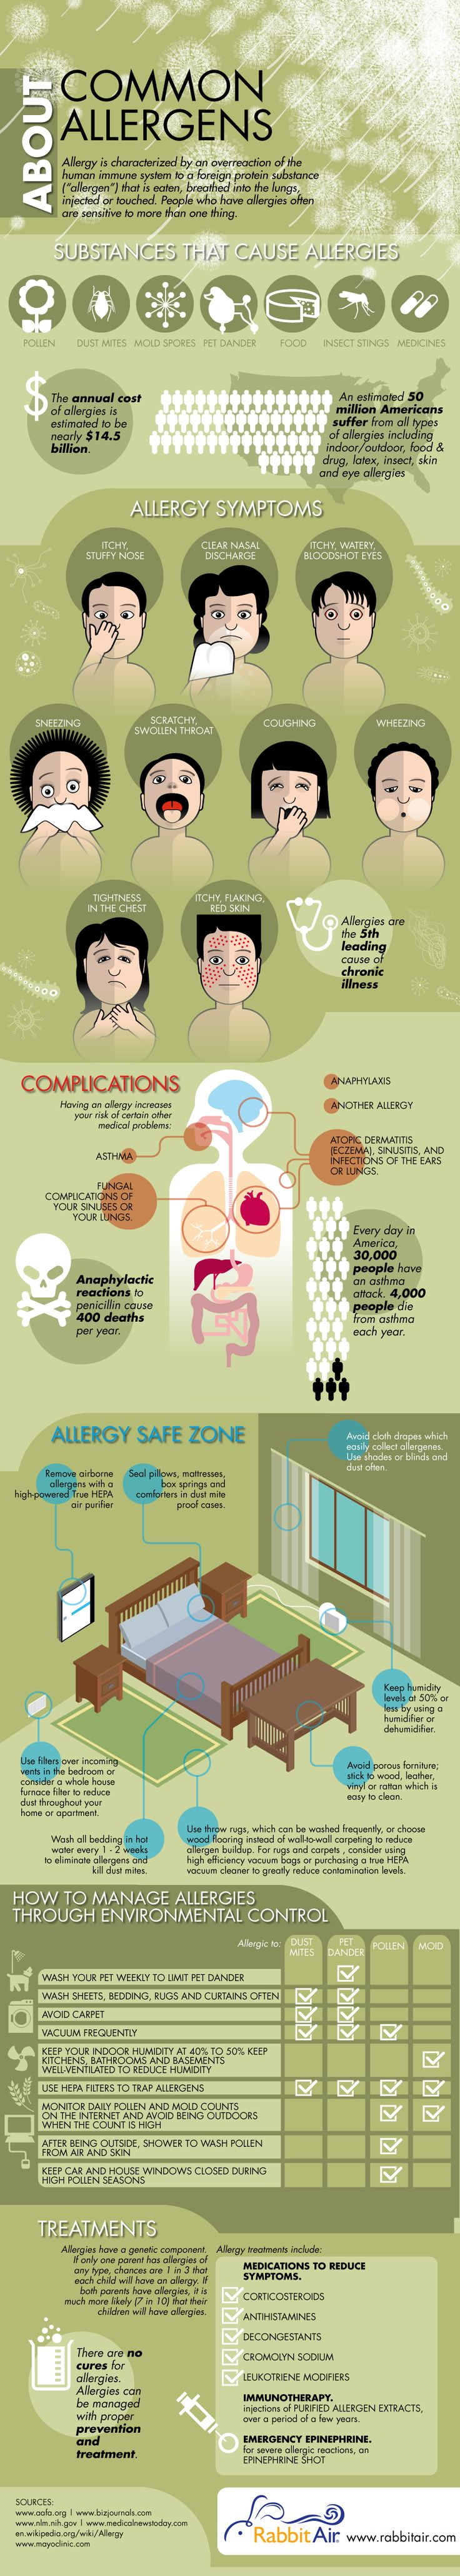 "Allergy is characterized by an overreaction of the human immune system to a foreign substance (""allergen"") that is eaten, breathed into the lungs, inj"